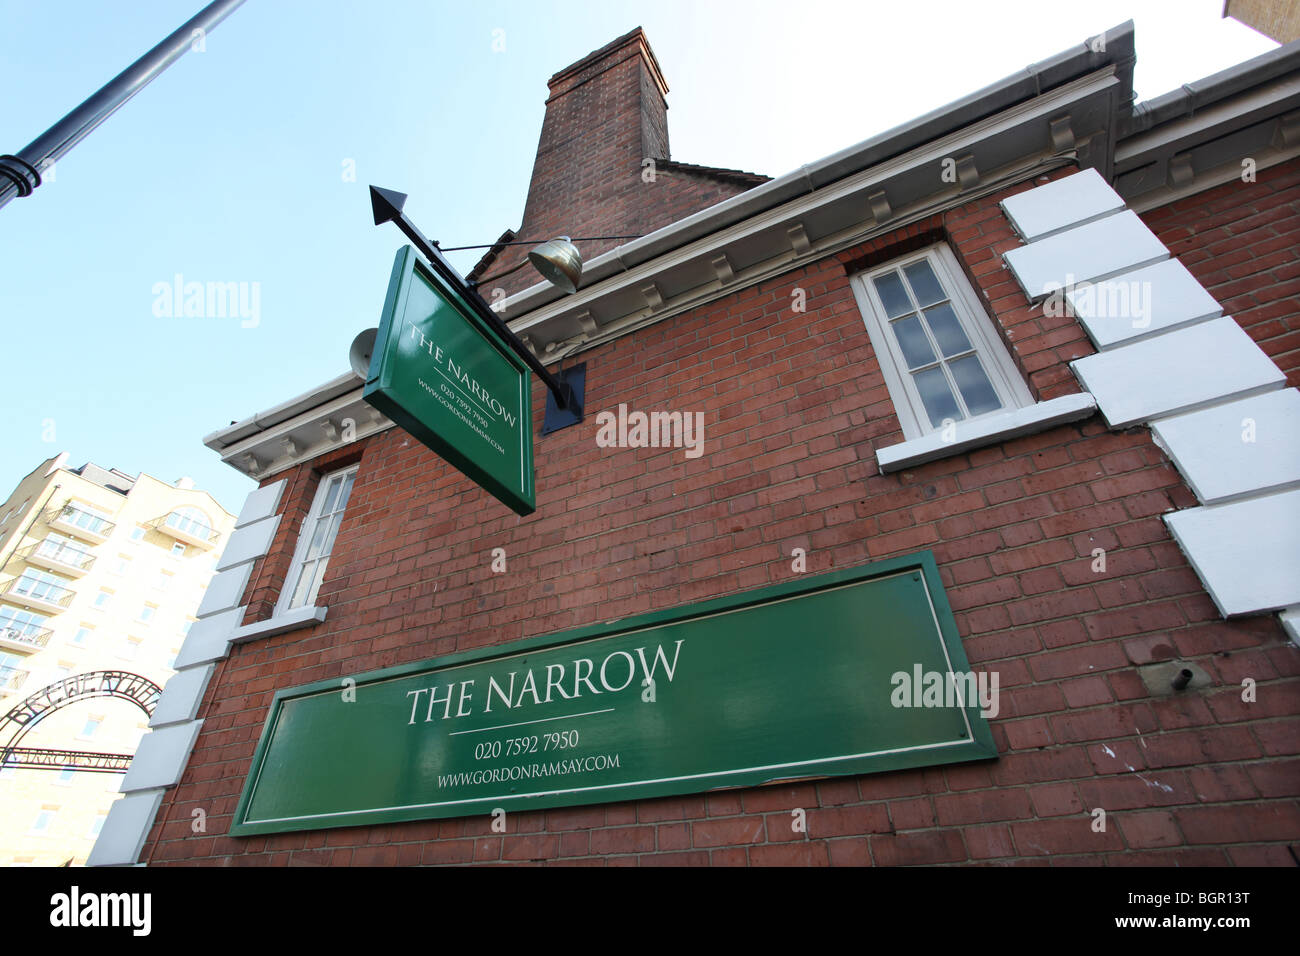 The Narrow, Riverside Pub in Limehouse, London, Uk Gordon Ramsey owned gastropub where he served precooked food - Stock Image